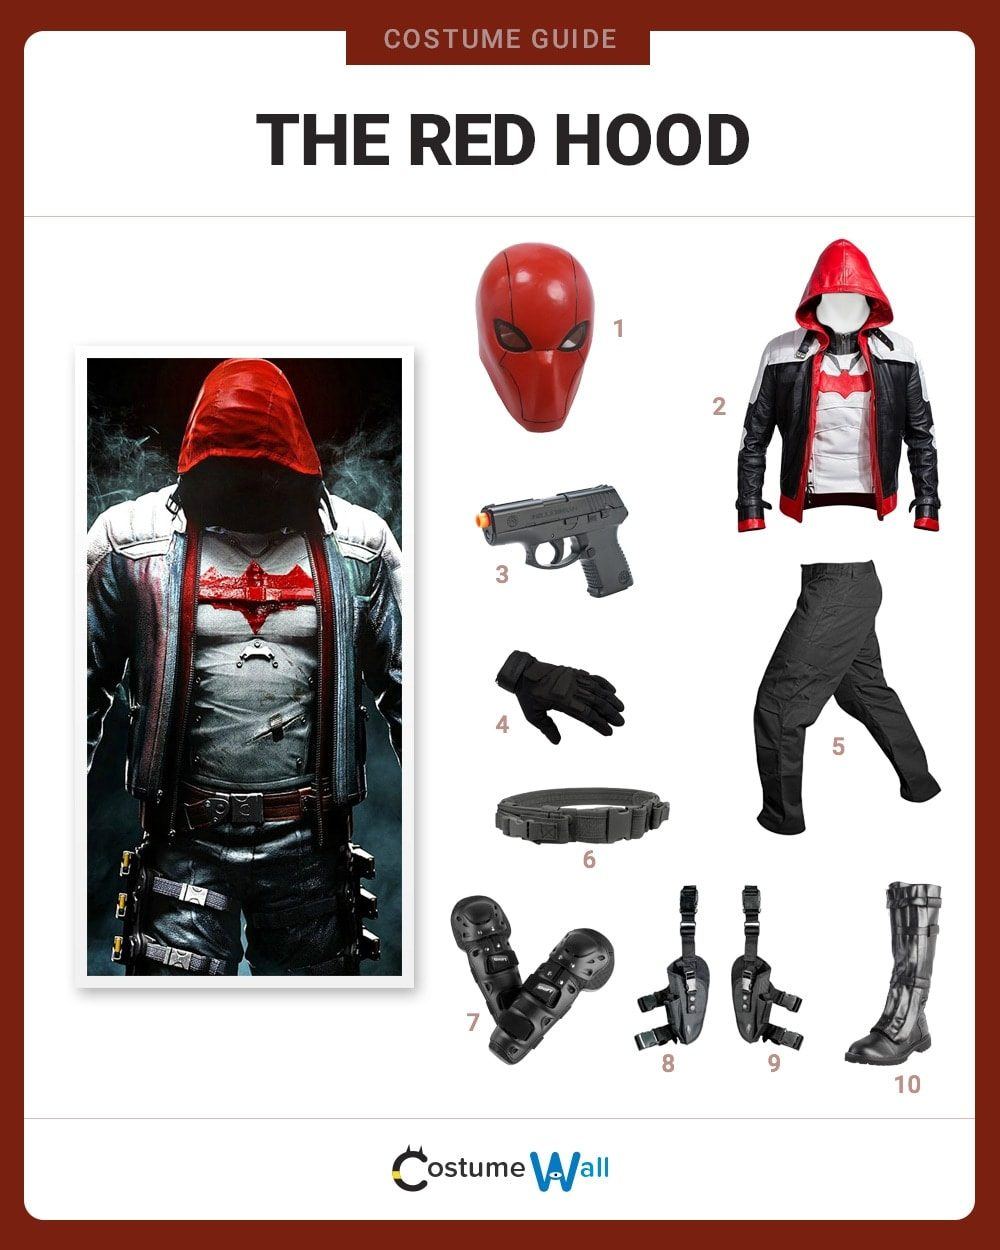 The Red Hood Costume Guide